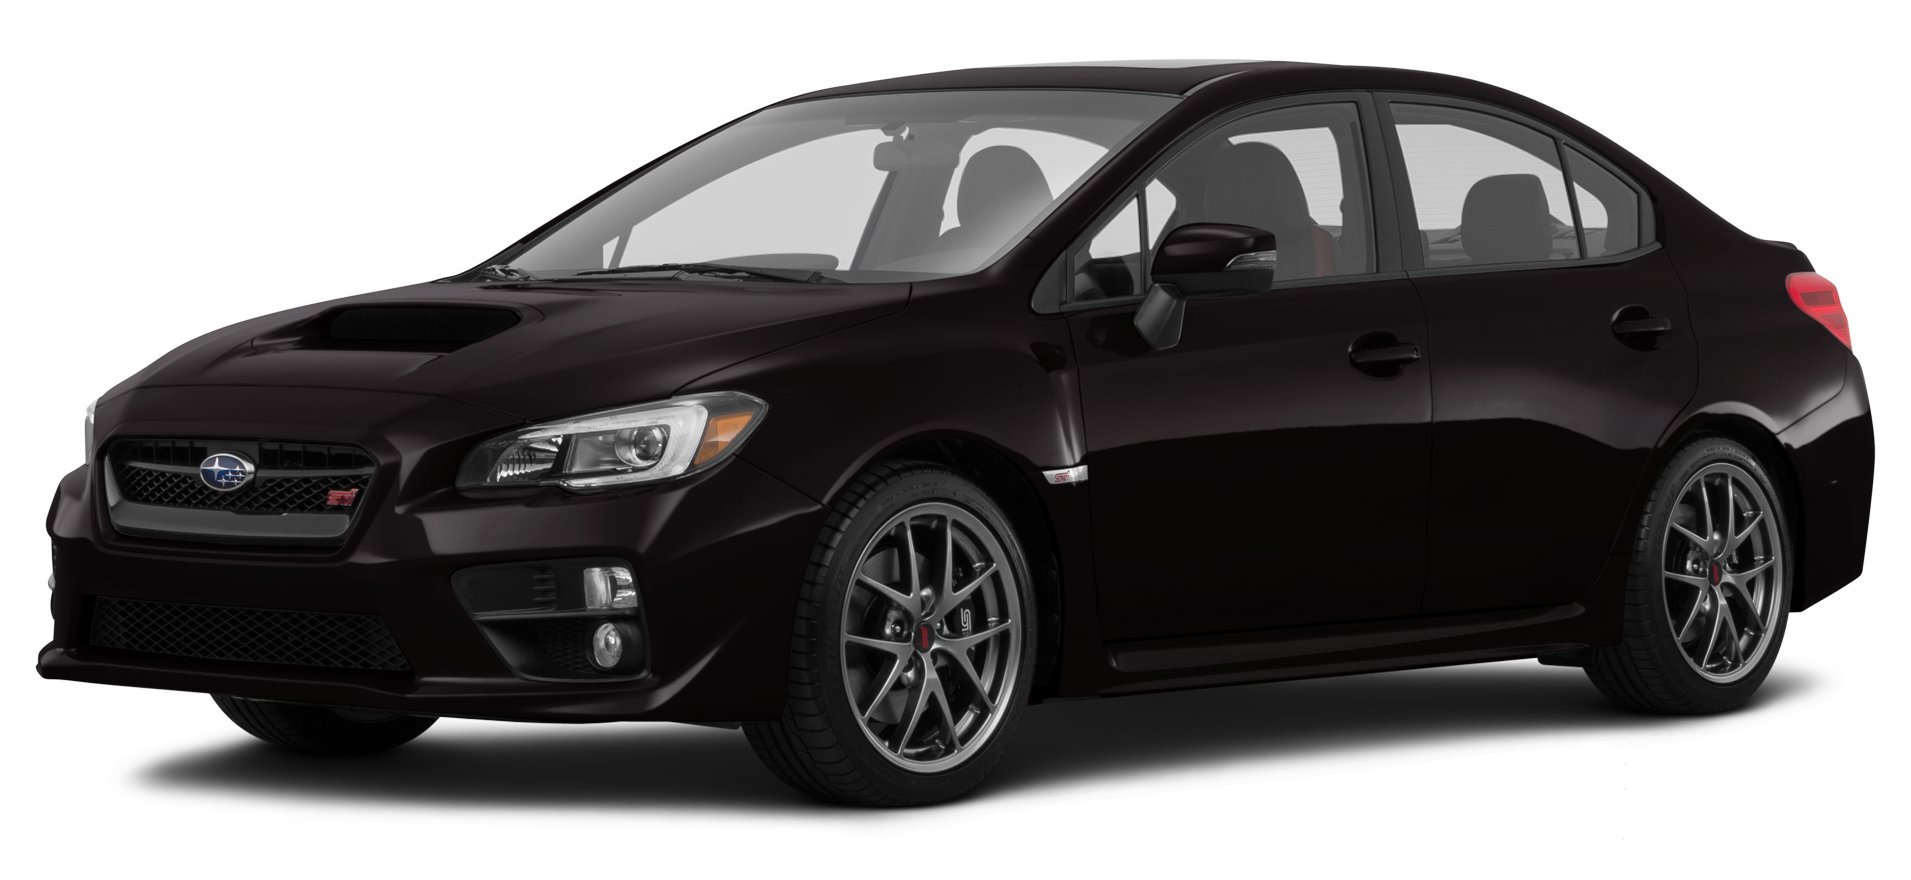 2016 subaru wrx sti reviews images and specs vehicles. Black Bedroom Furniture Sets. Home Design Ideas